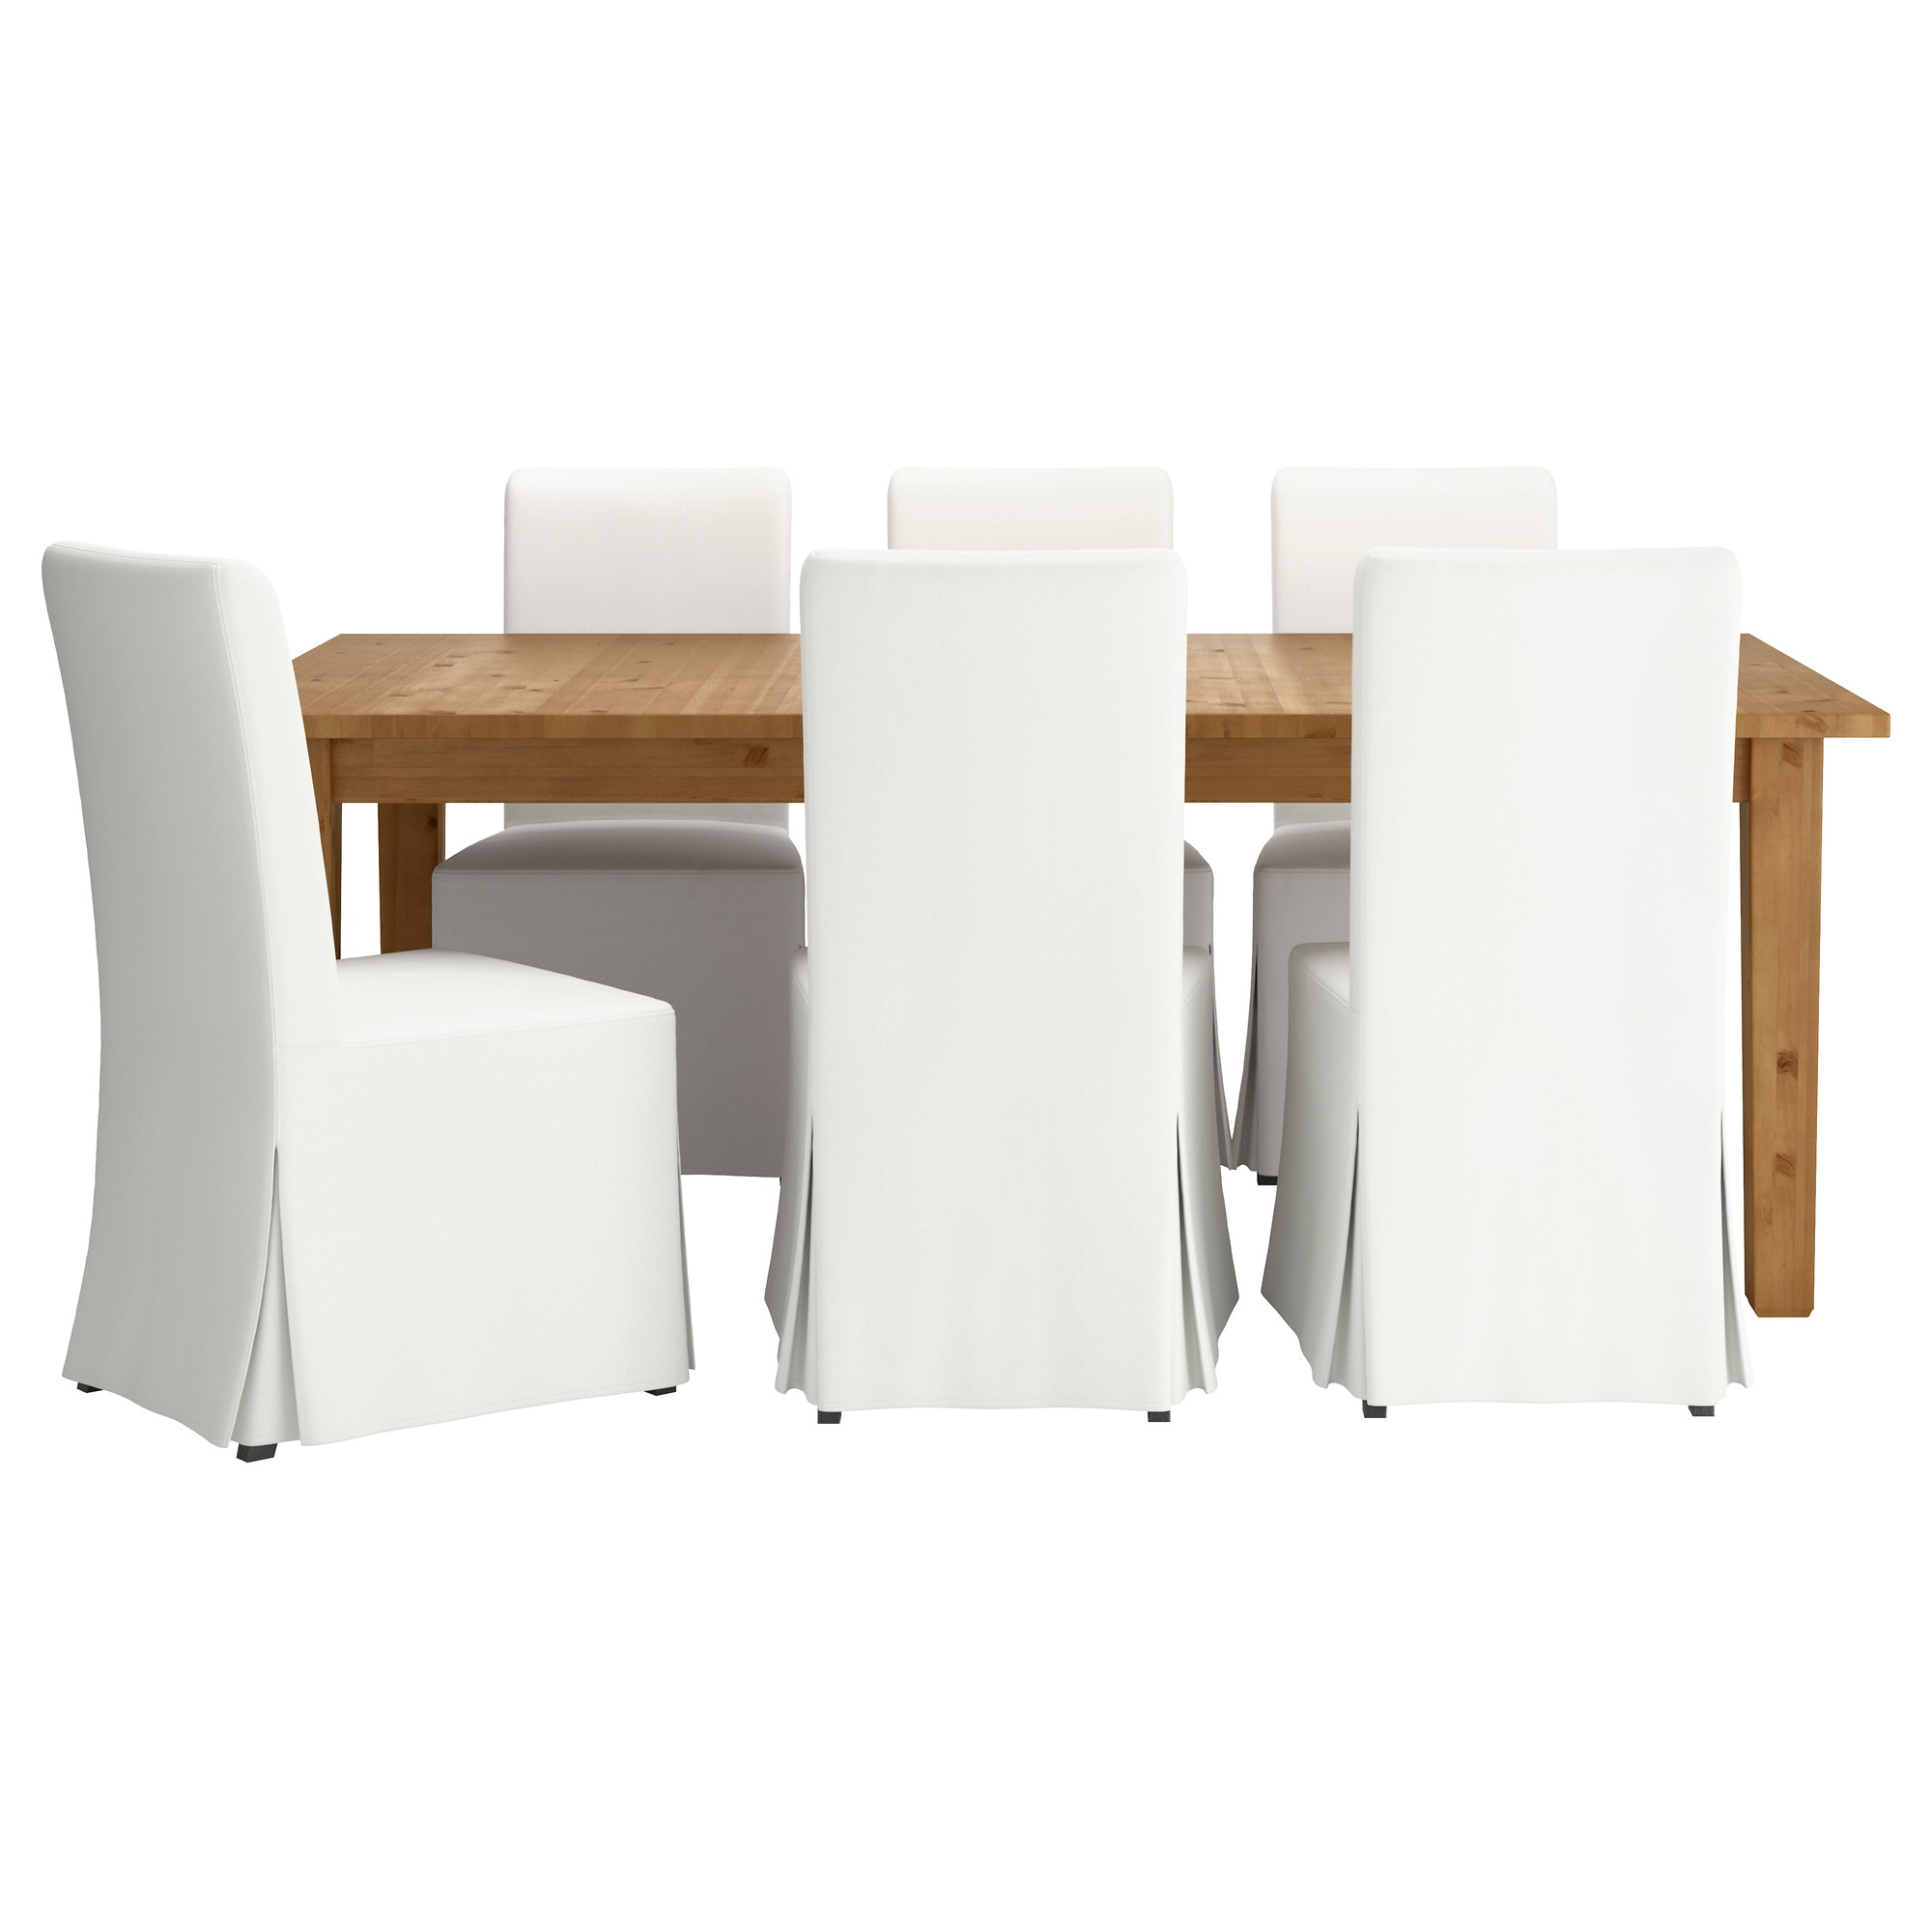 STORNS HENRIKSDAL Table And 6 Chairs